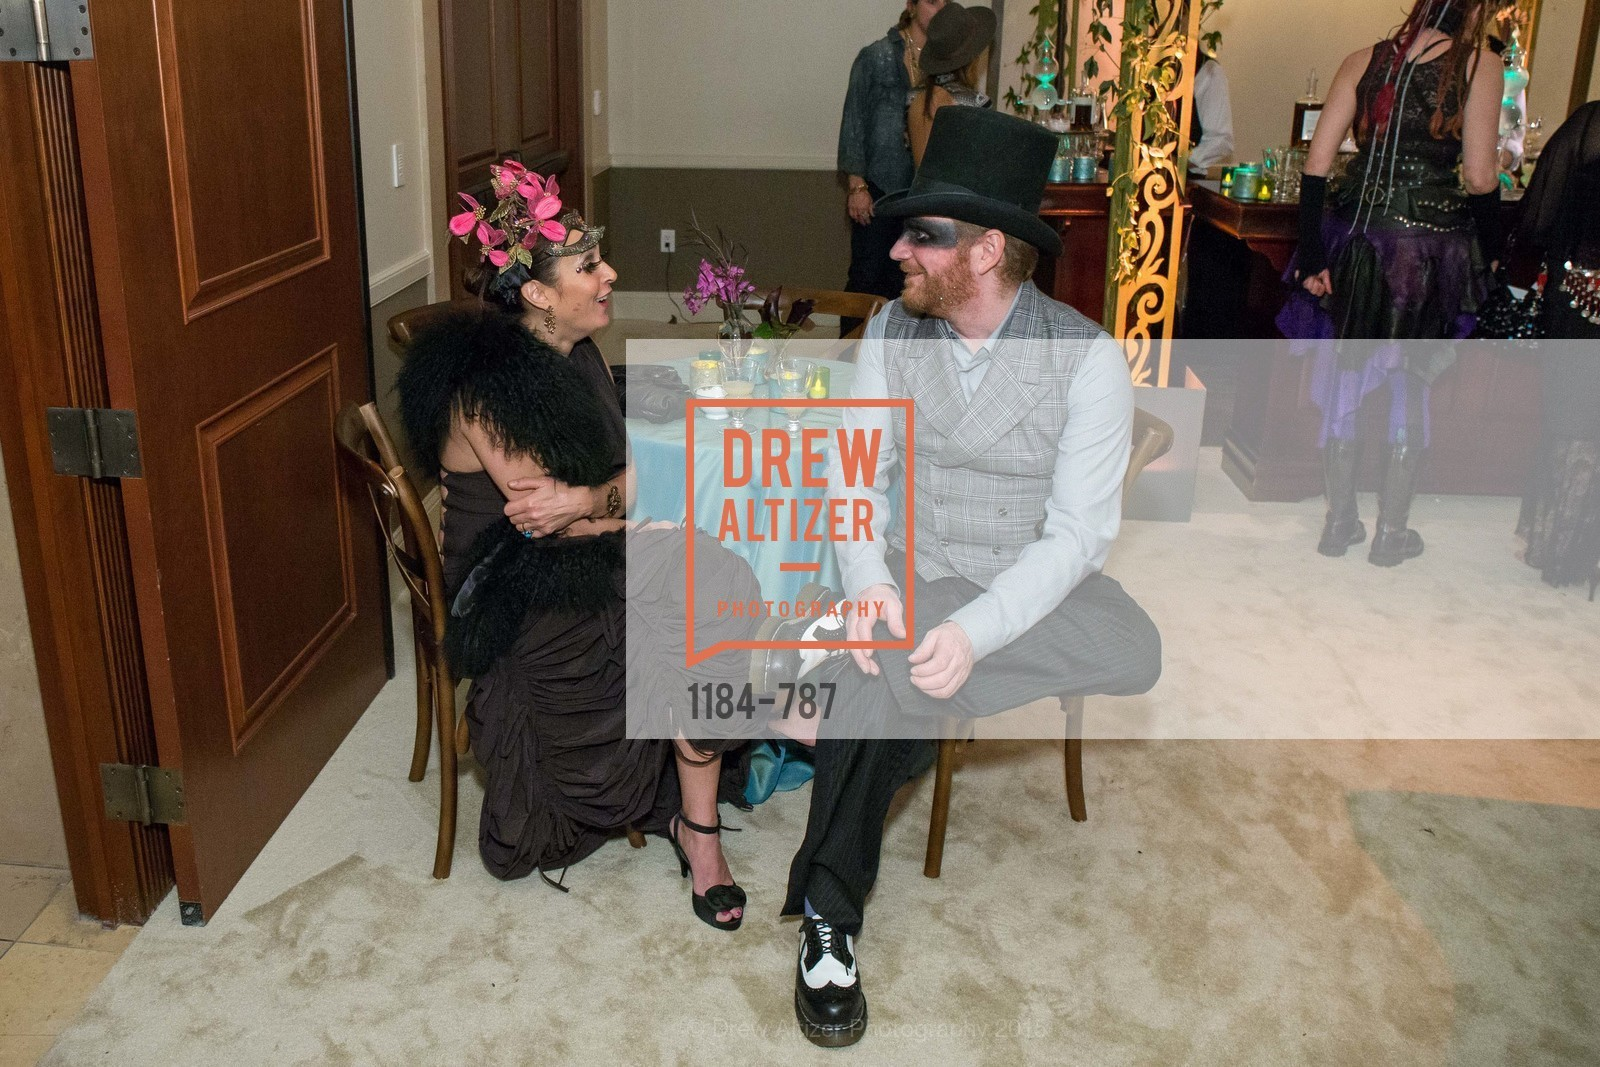 Top Picks, Bently Engagement, April 13th, 2015, Photo,Drew Altizer, Drew Altizer Photography, full-service agency, private events, San Francisco photographer, photographer california